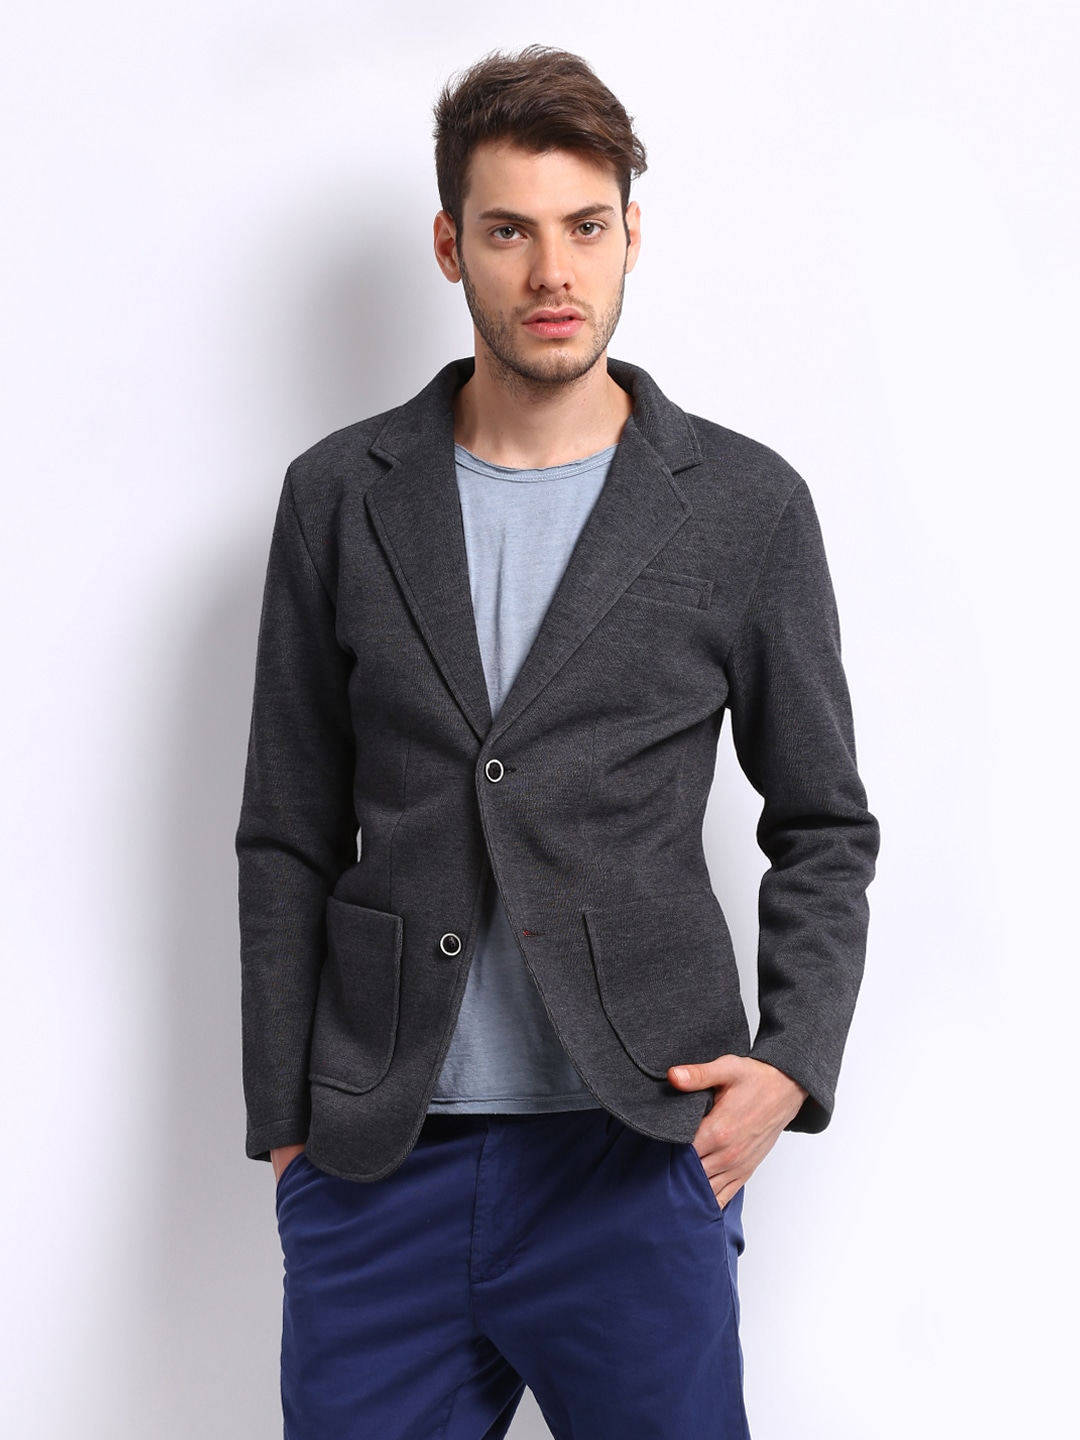 Dark Grey Blazer. Although grey is often seen as a lighter alternative, a dark grey suit can be just as versatile as black. The darker shade means that it will work well with a wider range of items. Try teaming a dark grey blazer with a black turtleneck sweater and some matching trousers for a formal look that works in multiple seasons.